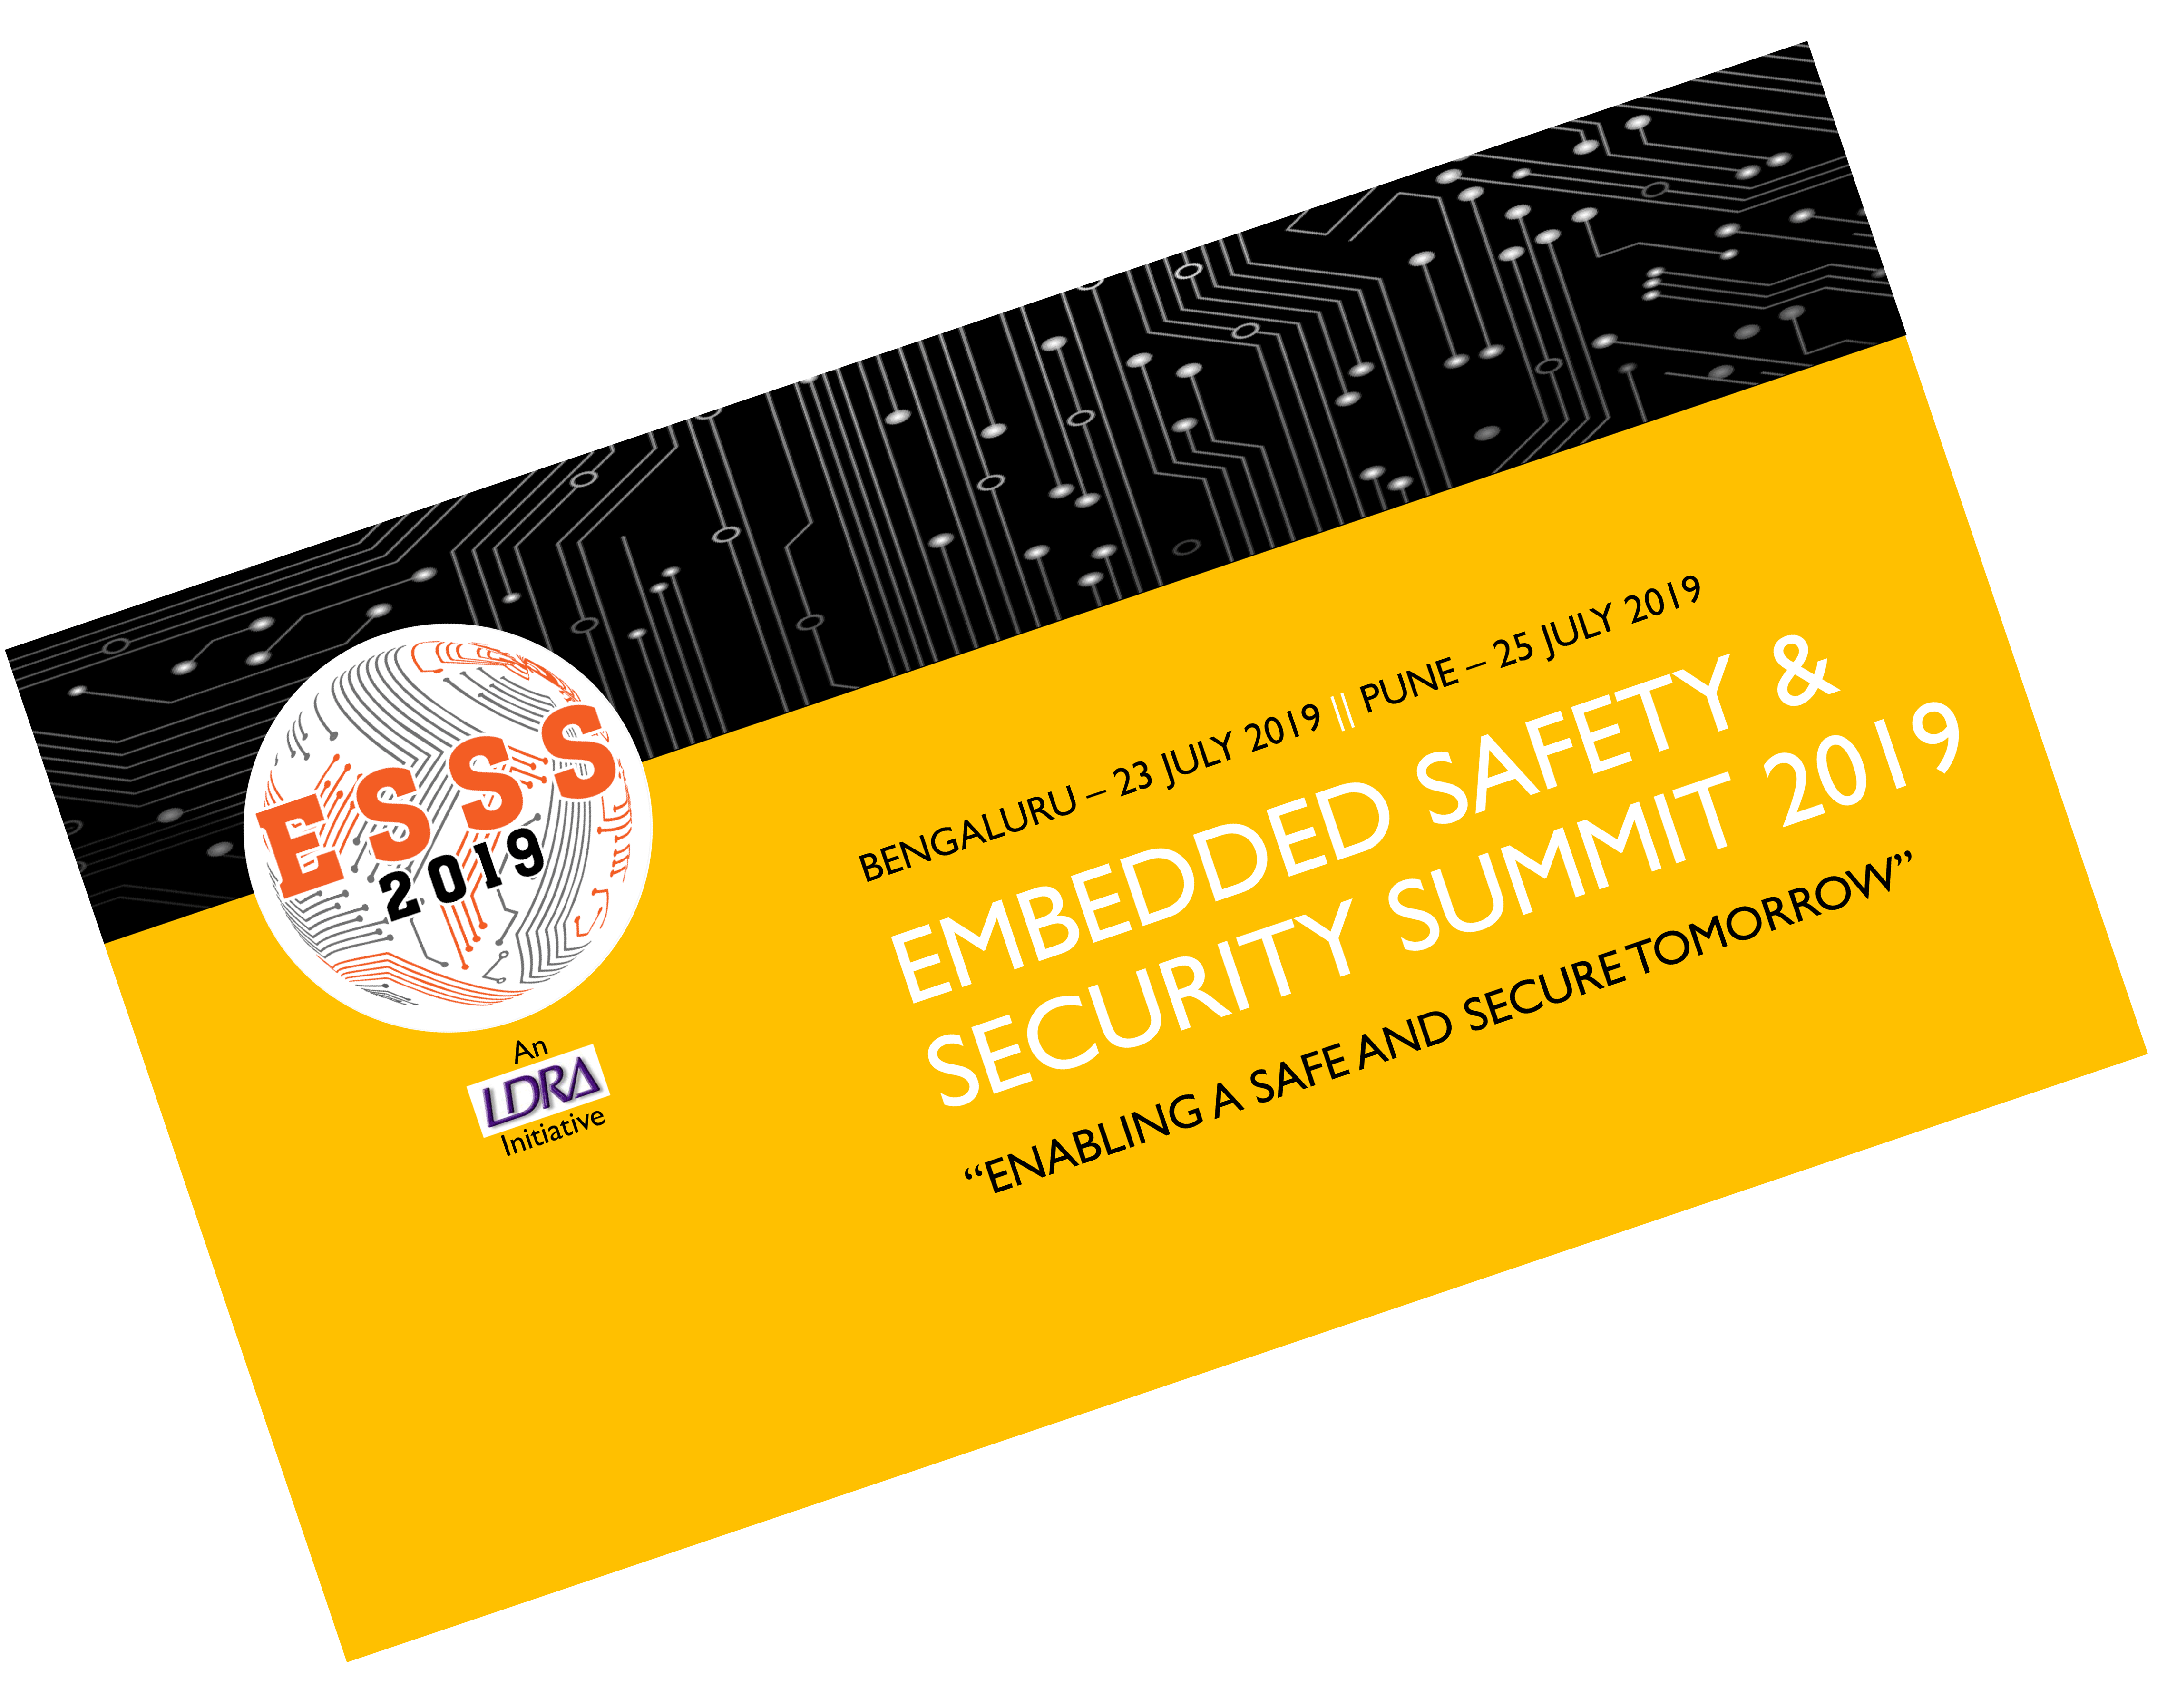 Embedded Safety & Security Summit 2019